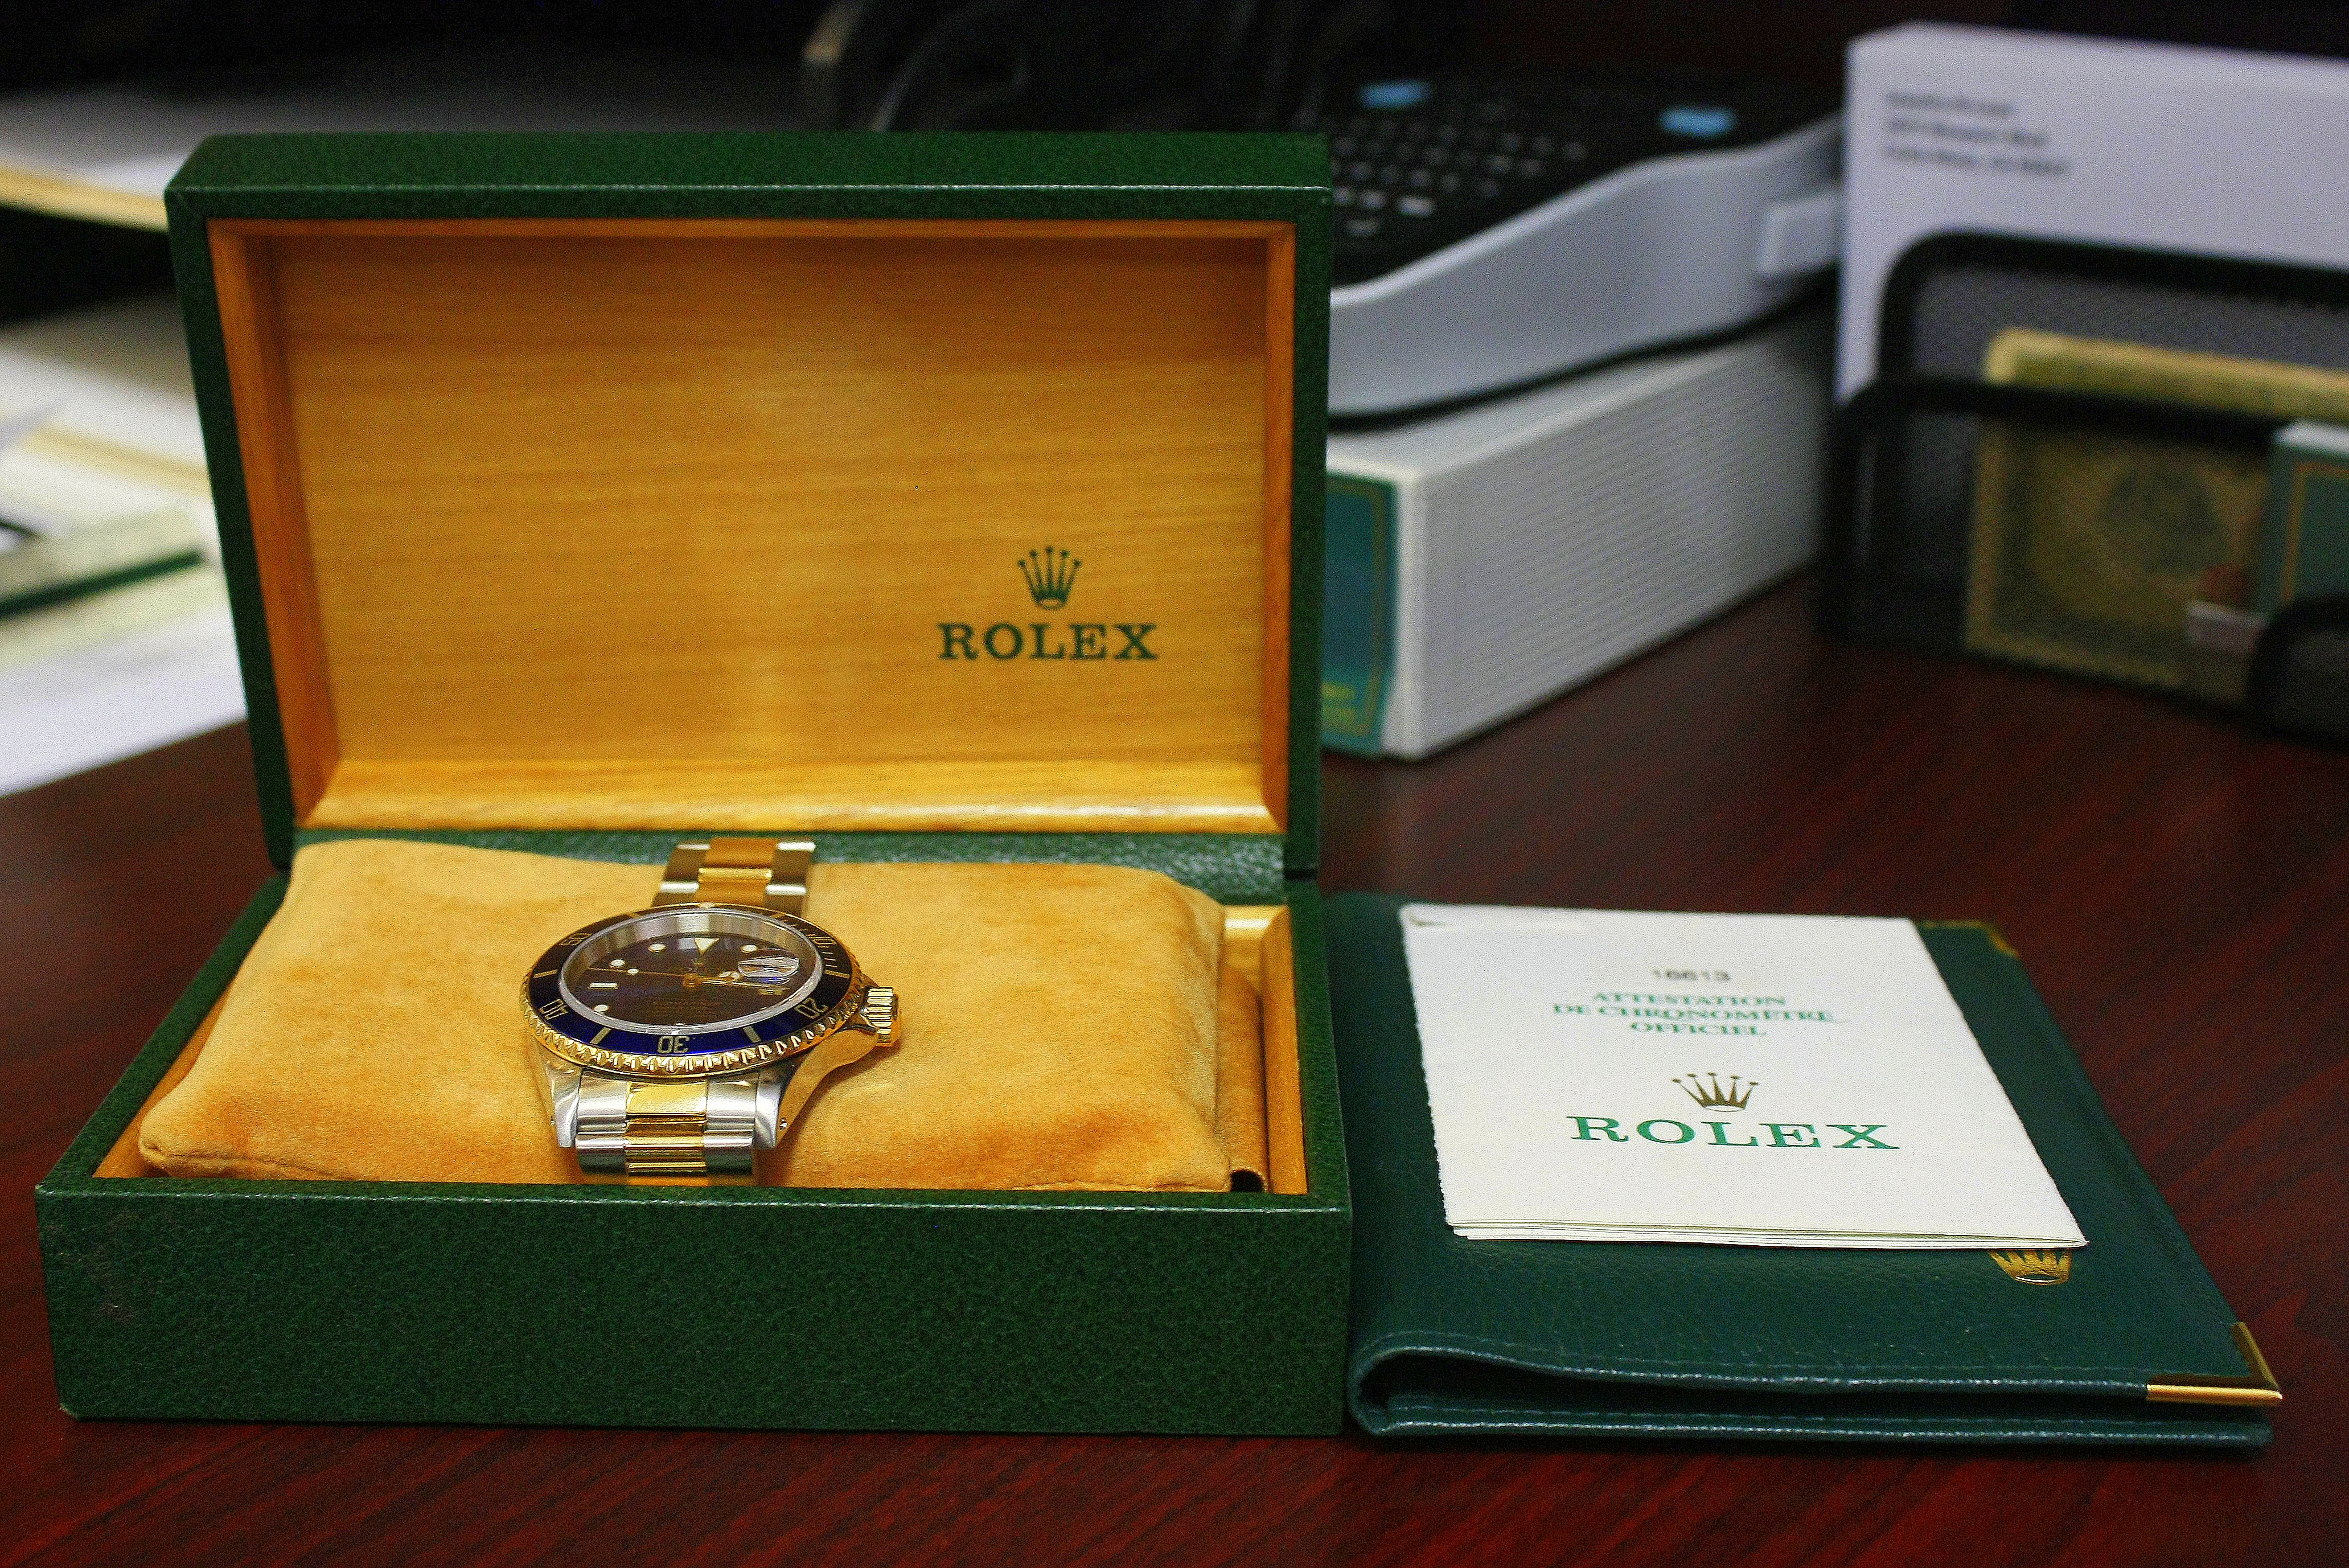 Rolex Two-Tone Submariner - $6,400